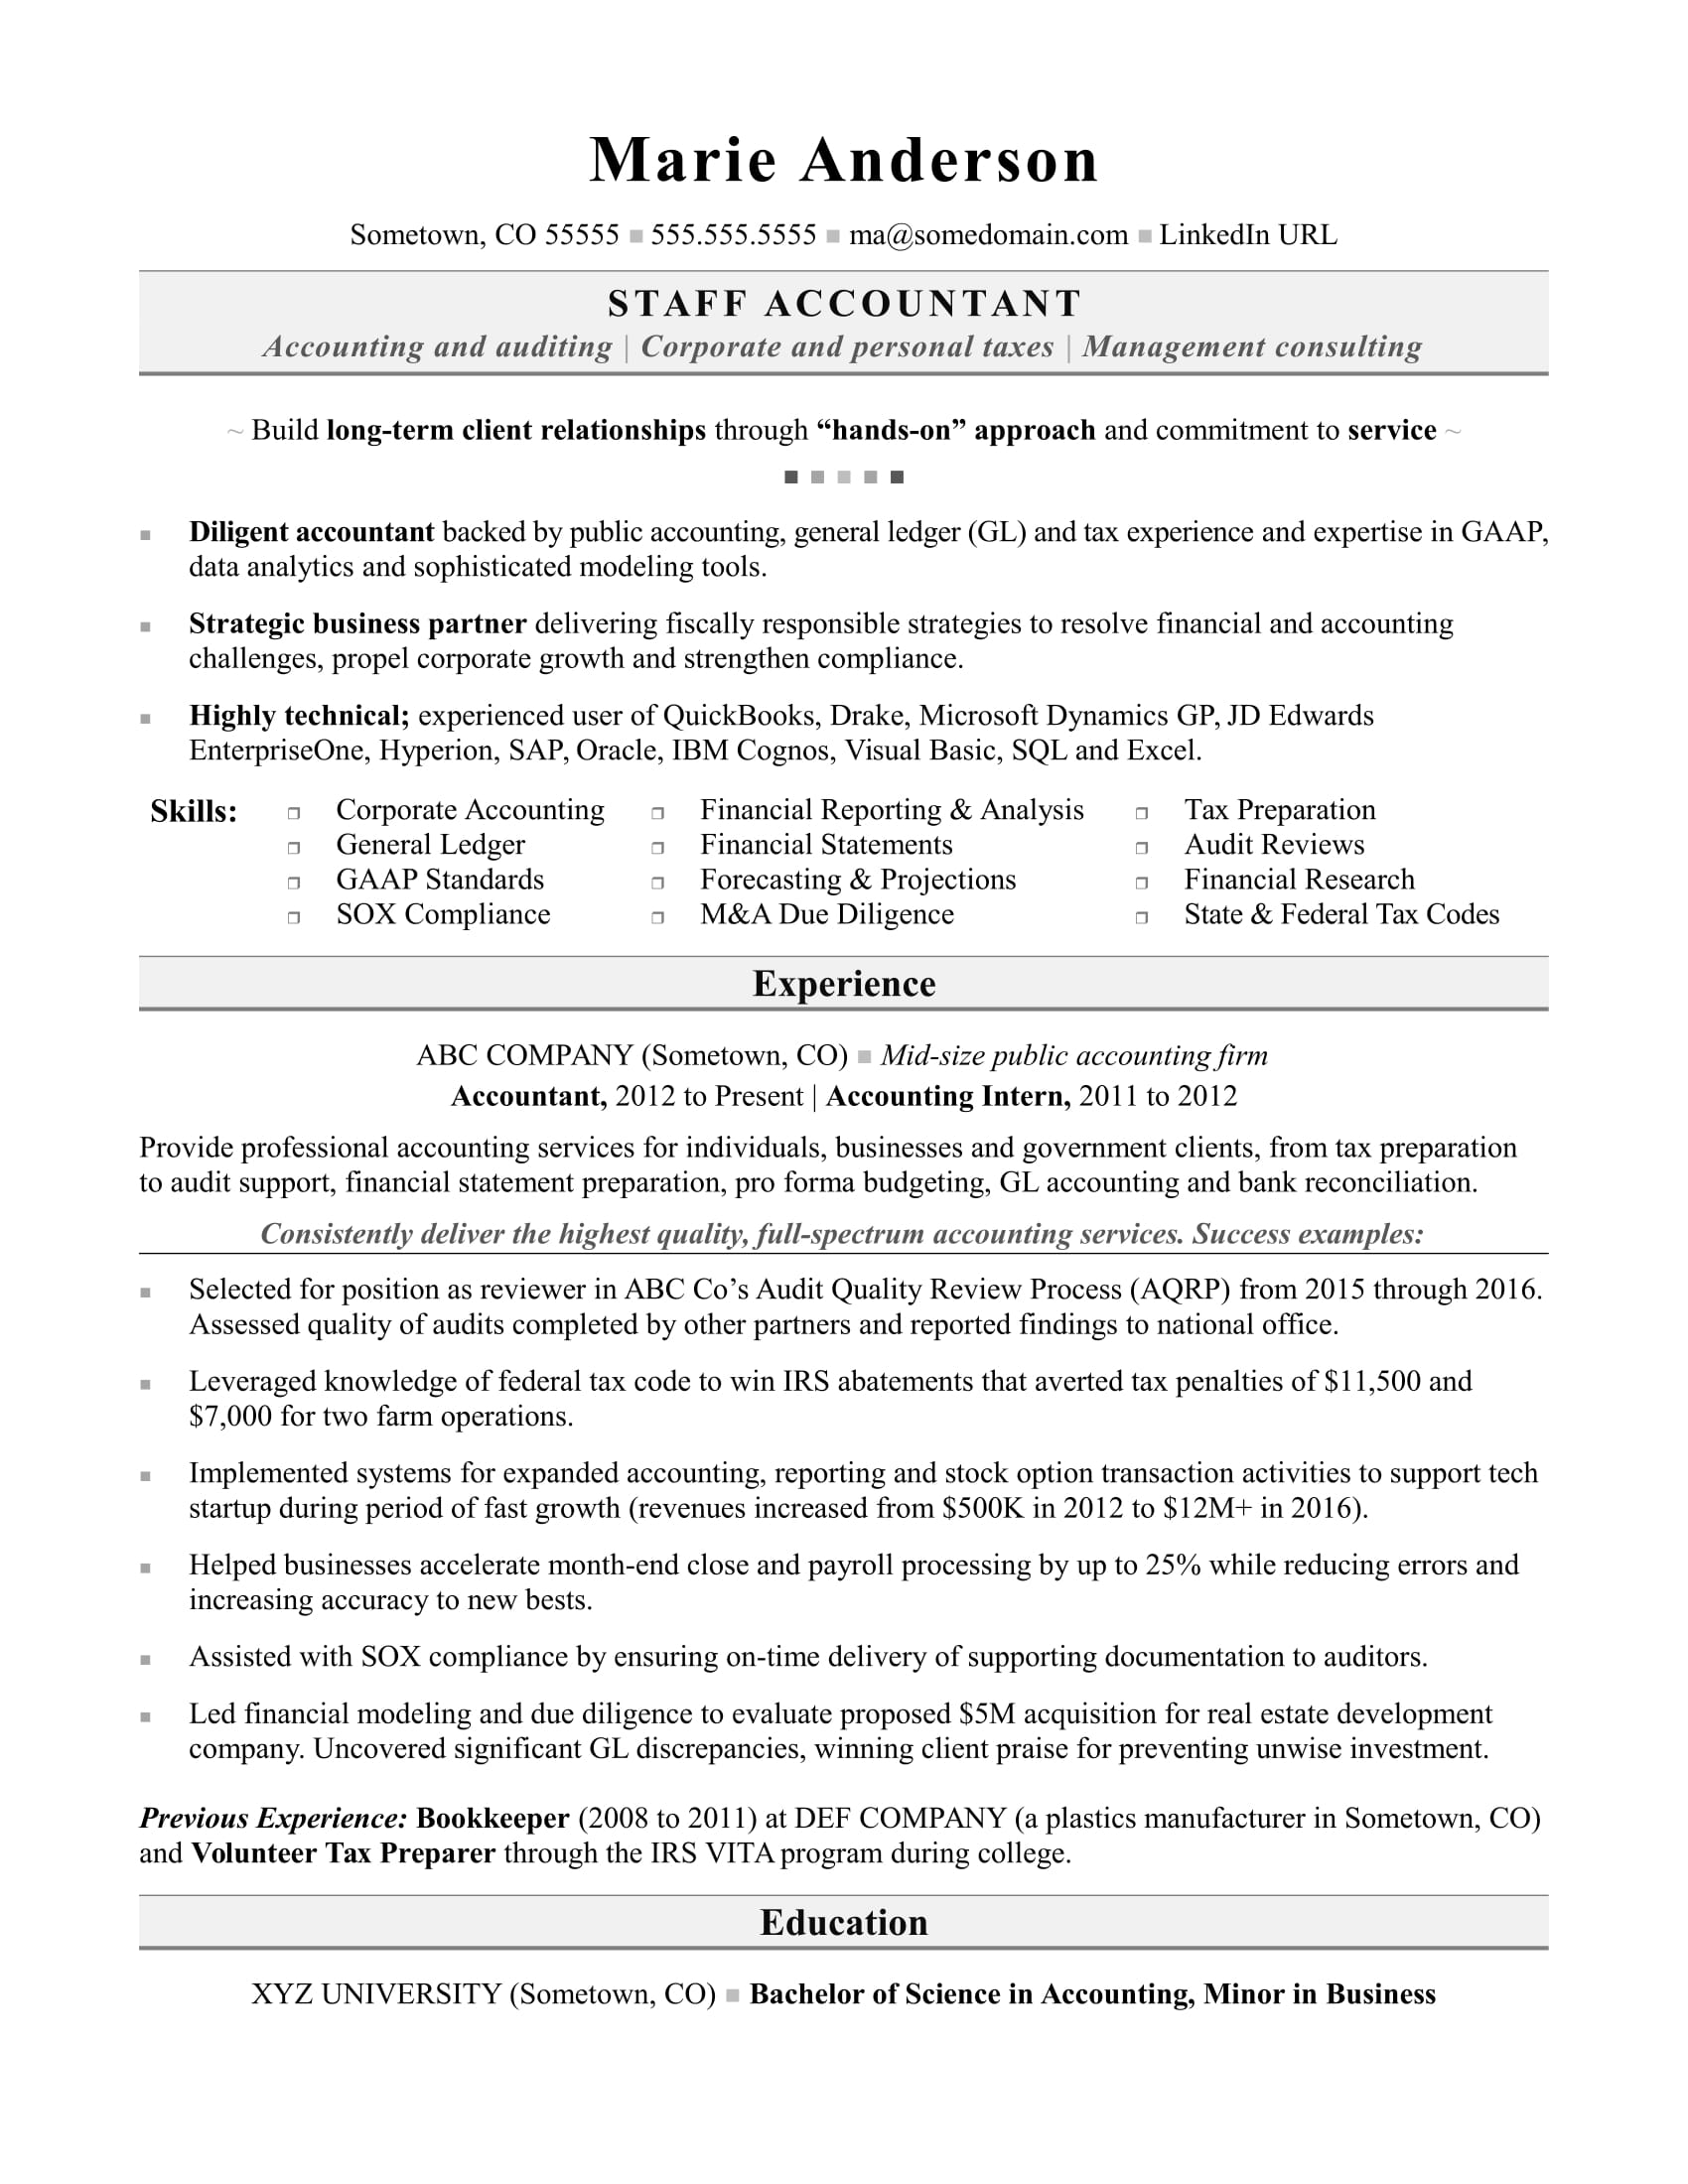 accounting resume sample monster accountant summary printing on watermarked paper Resume Accountant Resume Summary